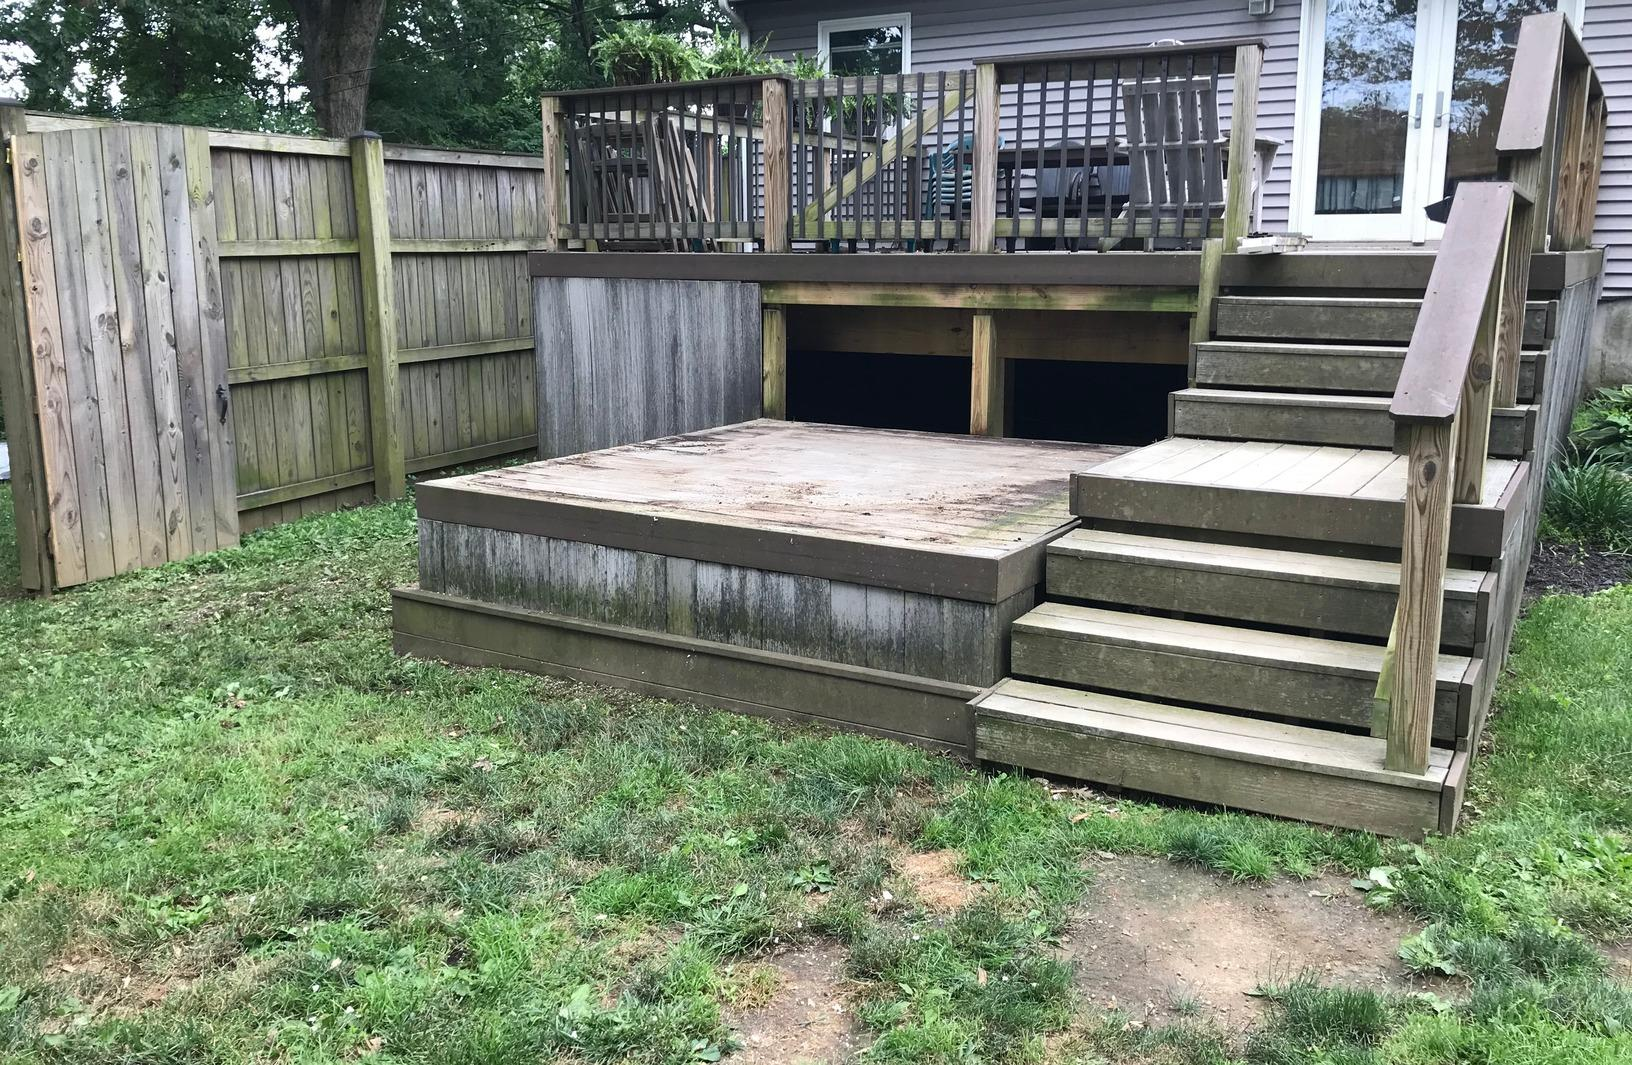 Hut Tub Removal in Catonsville, MD - After Photo